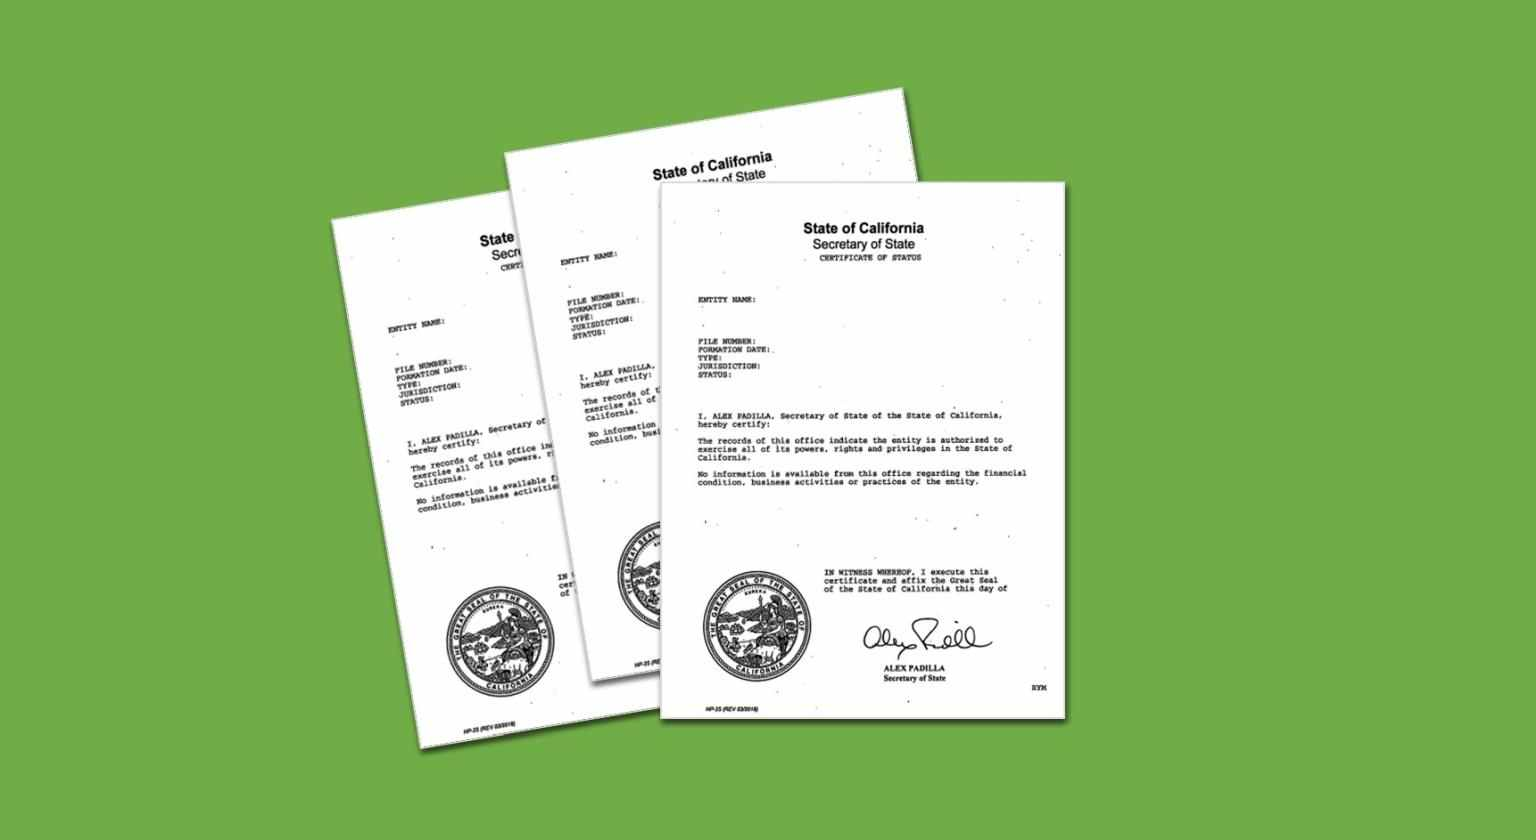 Secure this document to prove your business exists and remains in compliance with state requirements.